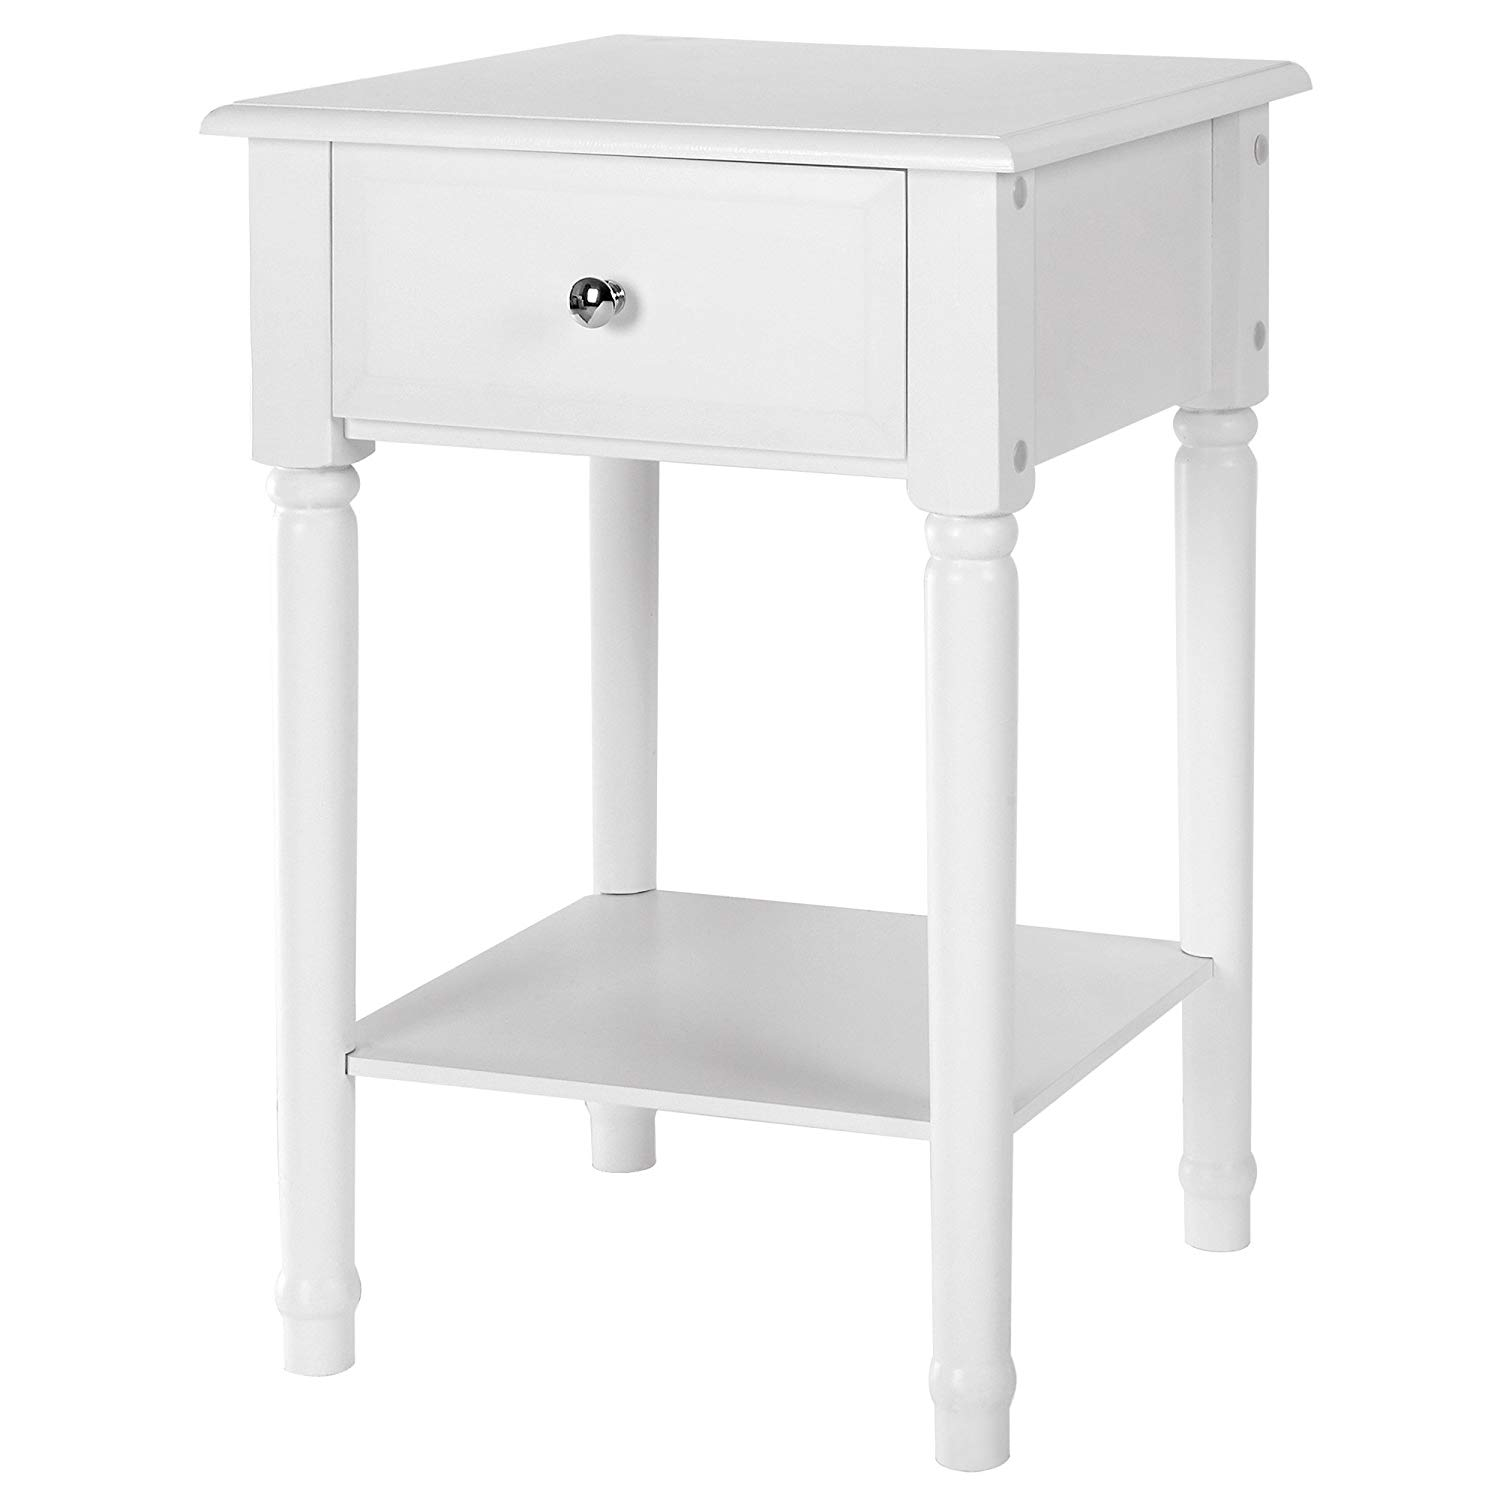 songmics white nightstand end table with solid pine wood legs bedside sliding drawer and storage shelf easy assemble ashley furniture porter panel wicker coffee tables night light